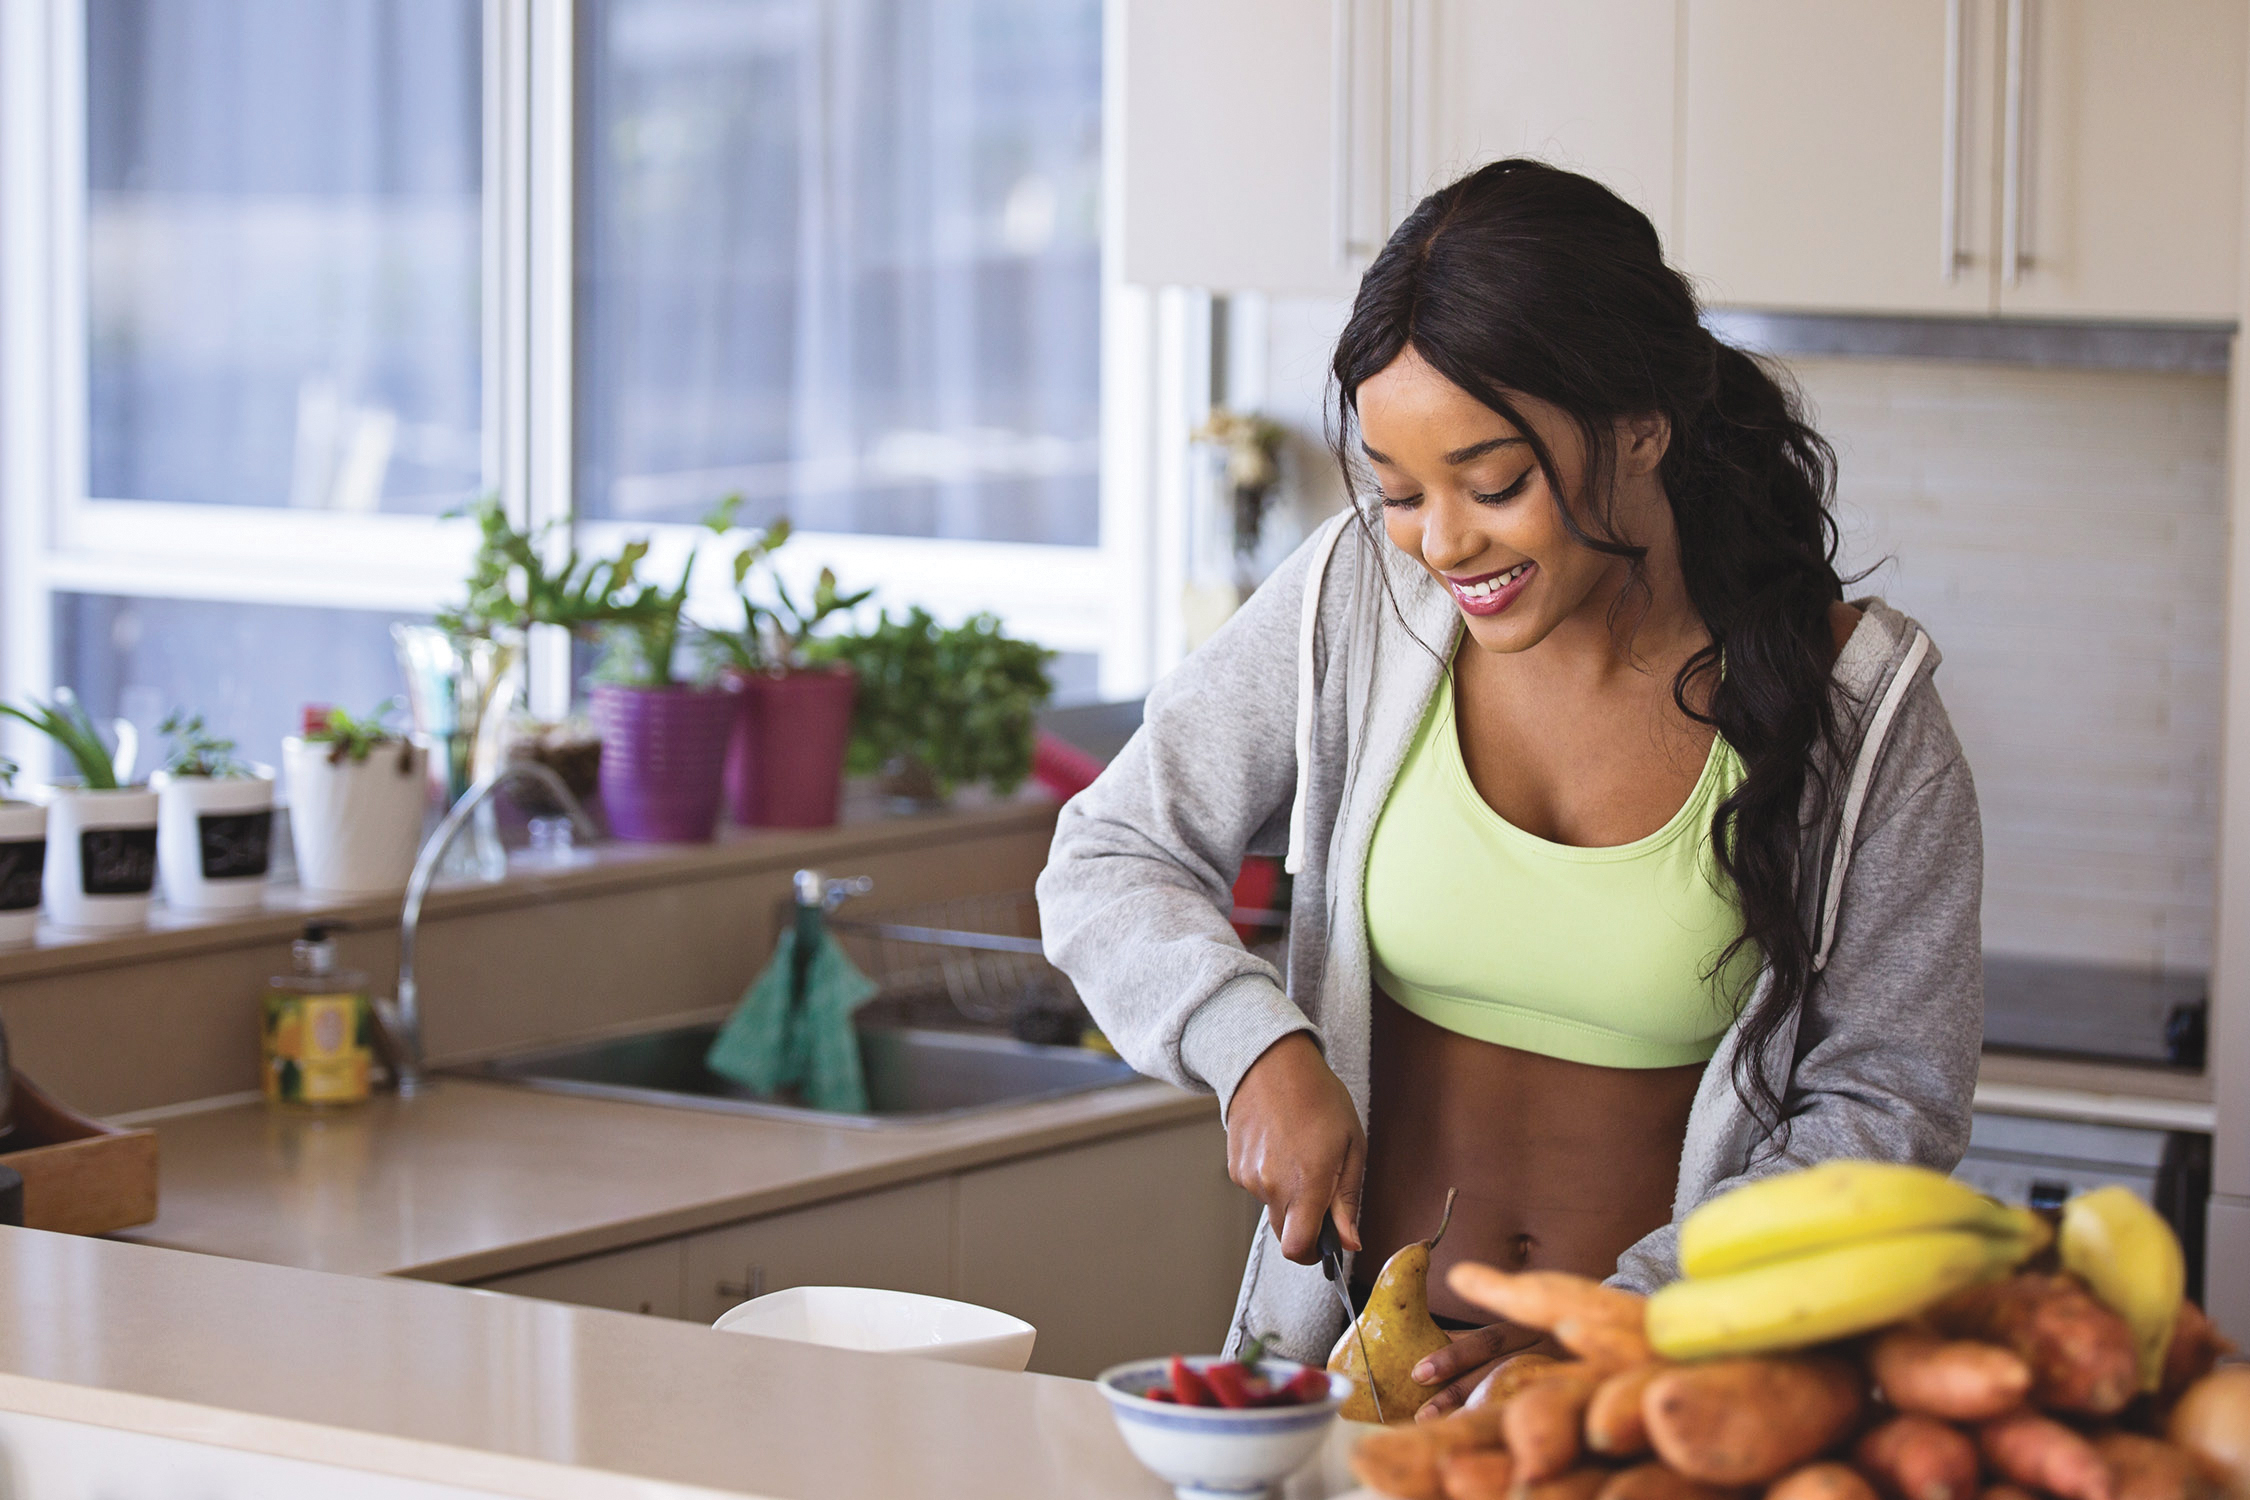 According to the African American Health Engagement Study (AAHES), a collaboration of Pfizer, the National Medical Association (NMA) and the National Black Nurses Association (NBNA), 75 percent of African American respondents claimed to be taking some action to stay healthy, compared to only 52 percent of non-African American respondents. (Pexels.com)